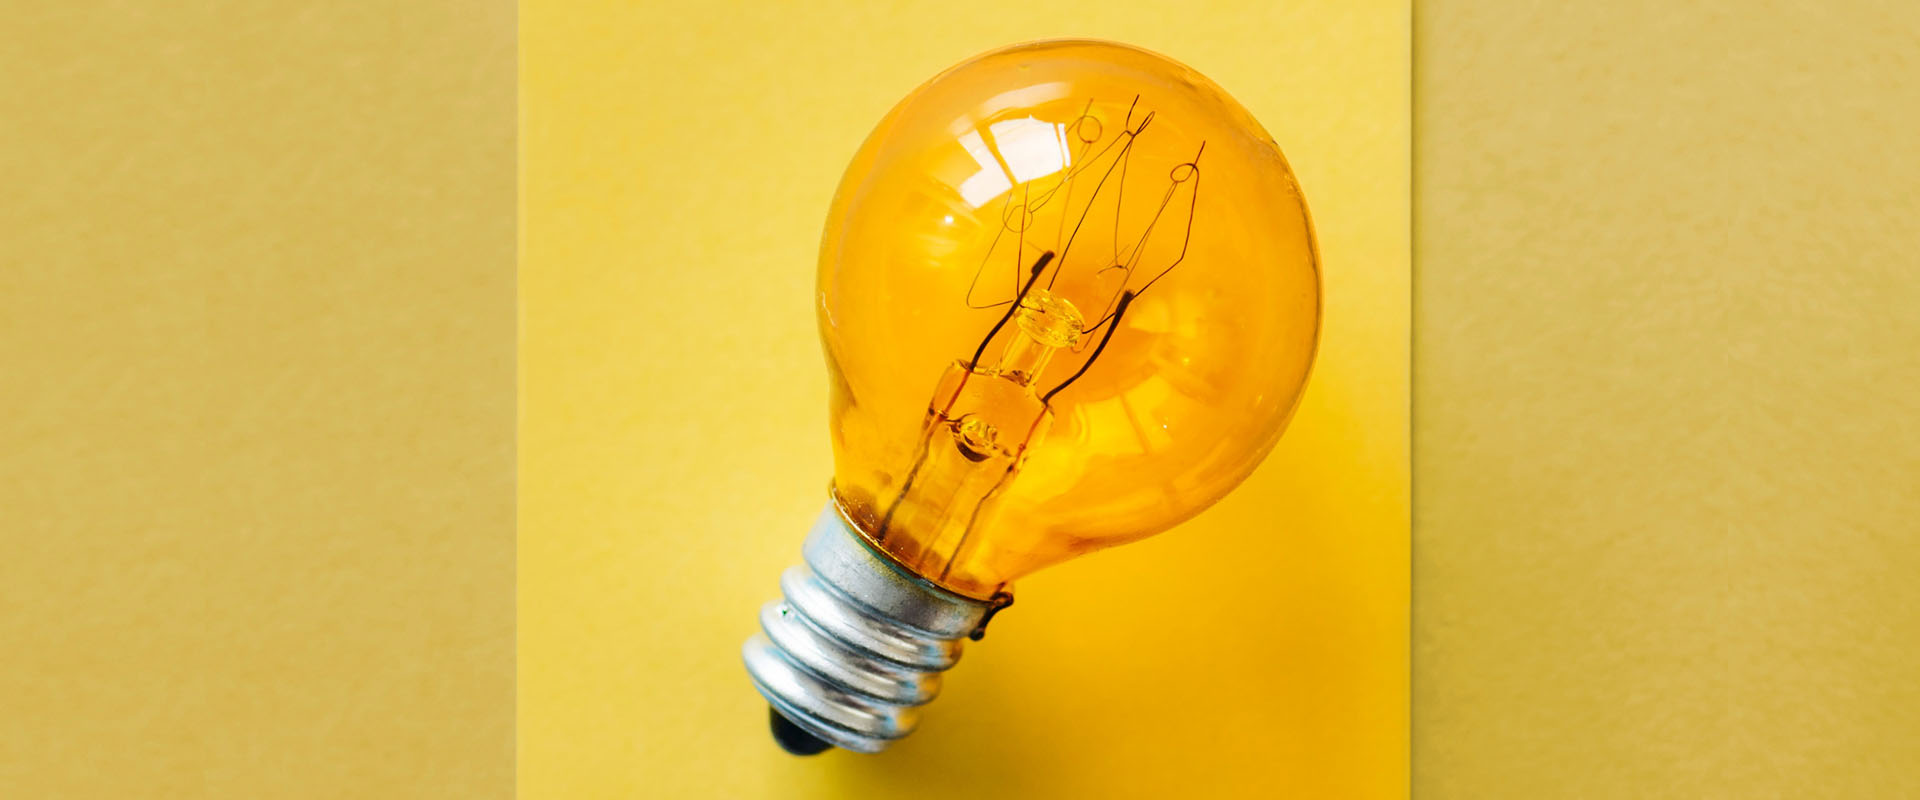 Orange light bulb on a yellow background representing thinking and innovation